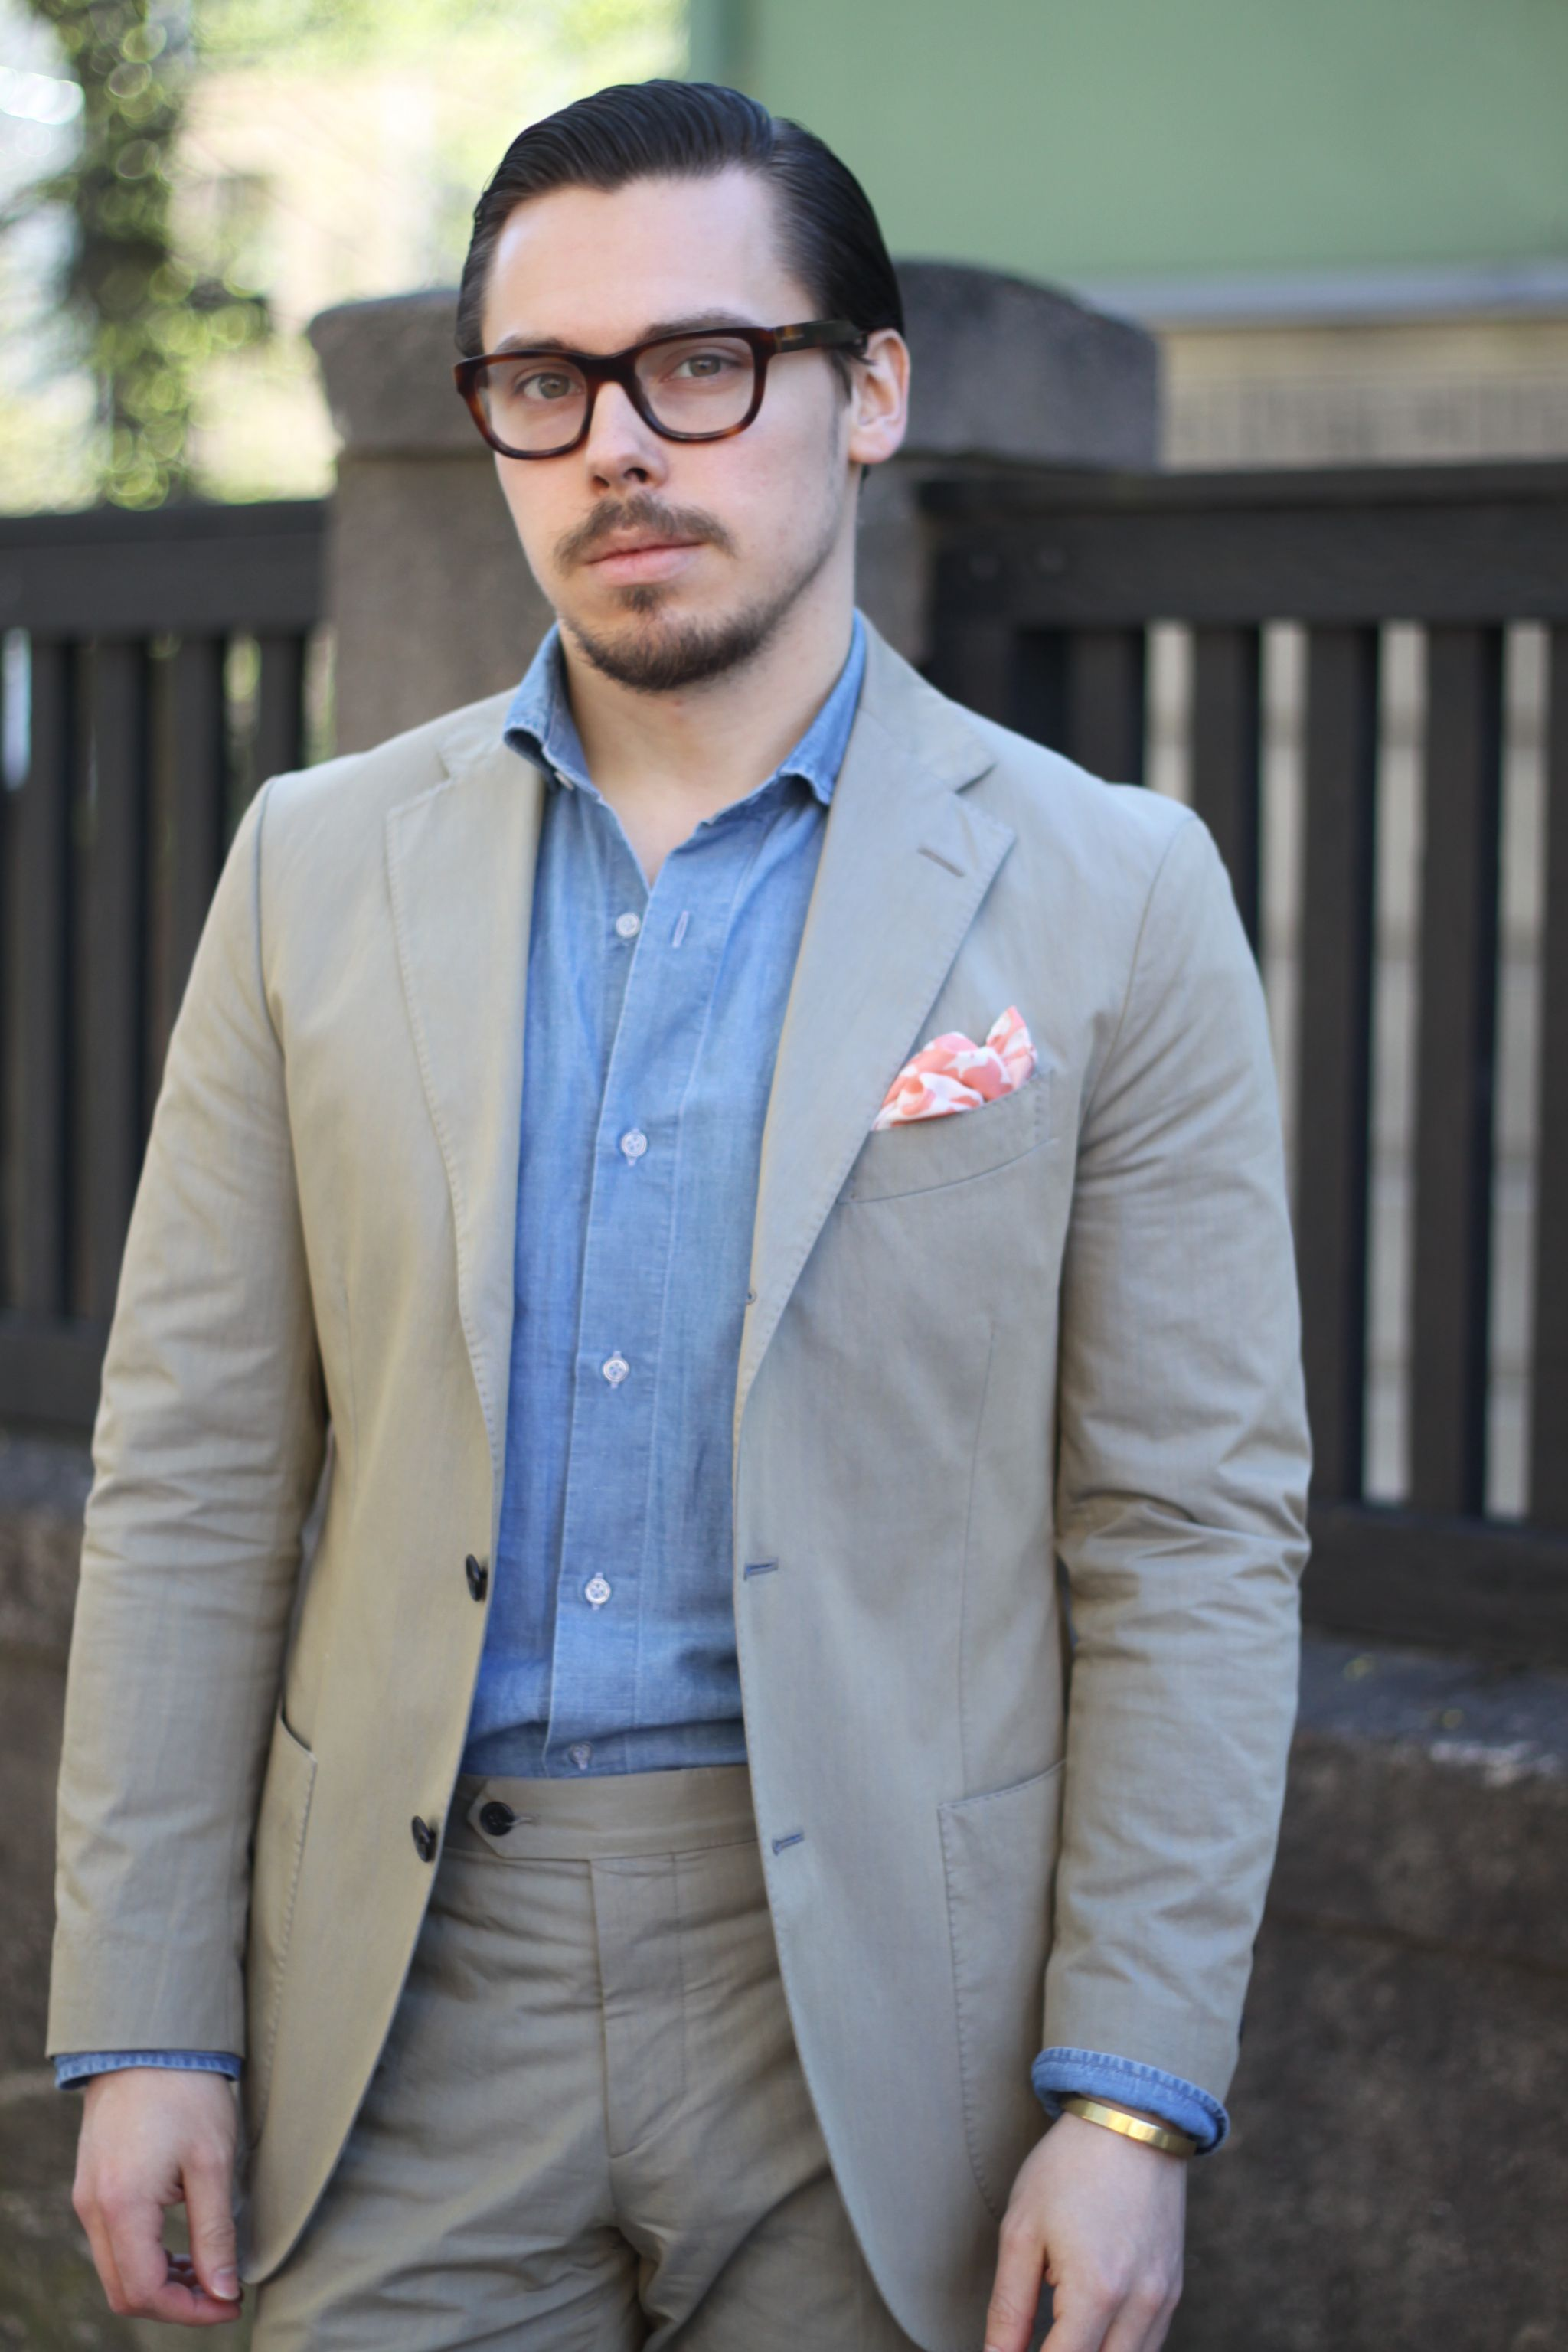 Suit without a tie - olive green cotton suit with denim shirt